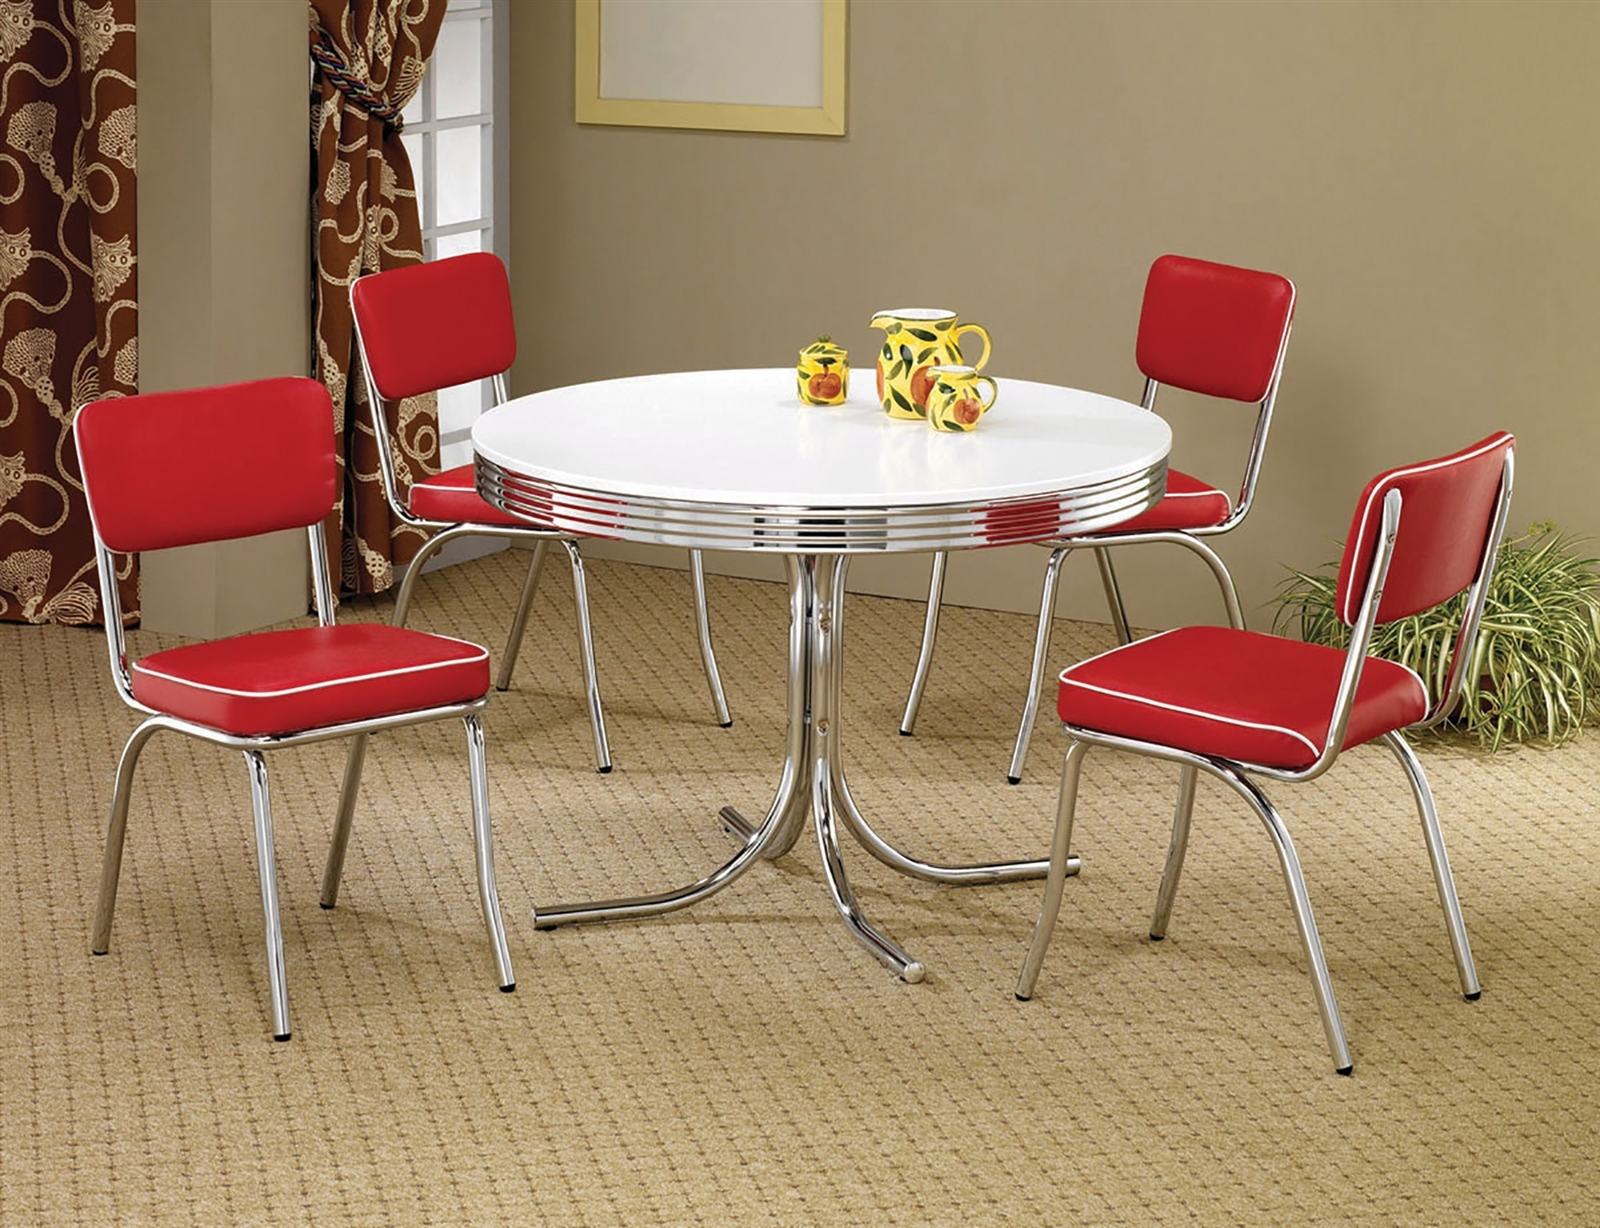 Retro Kitchen Table And Chairs You Ll, 50s Dining Room Furniture